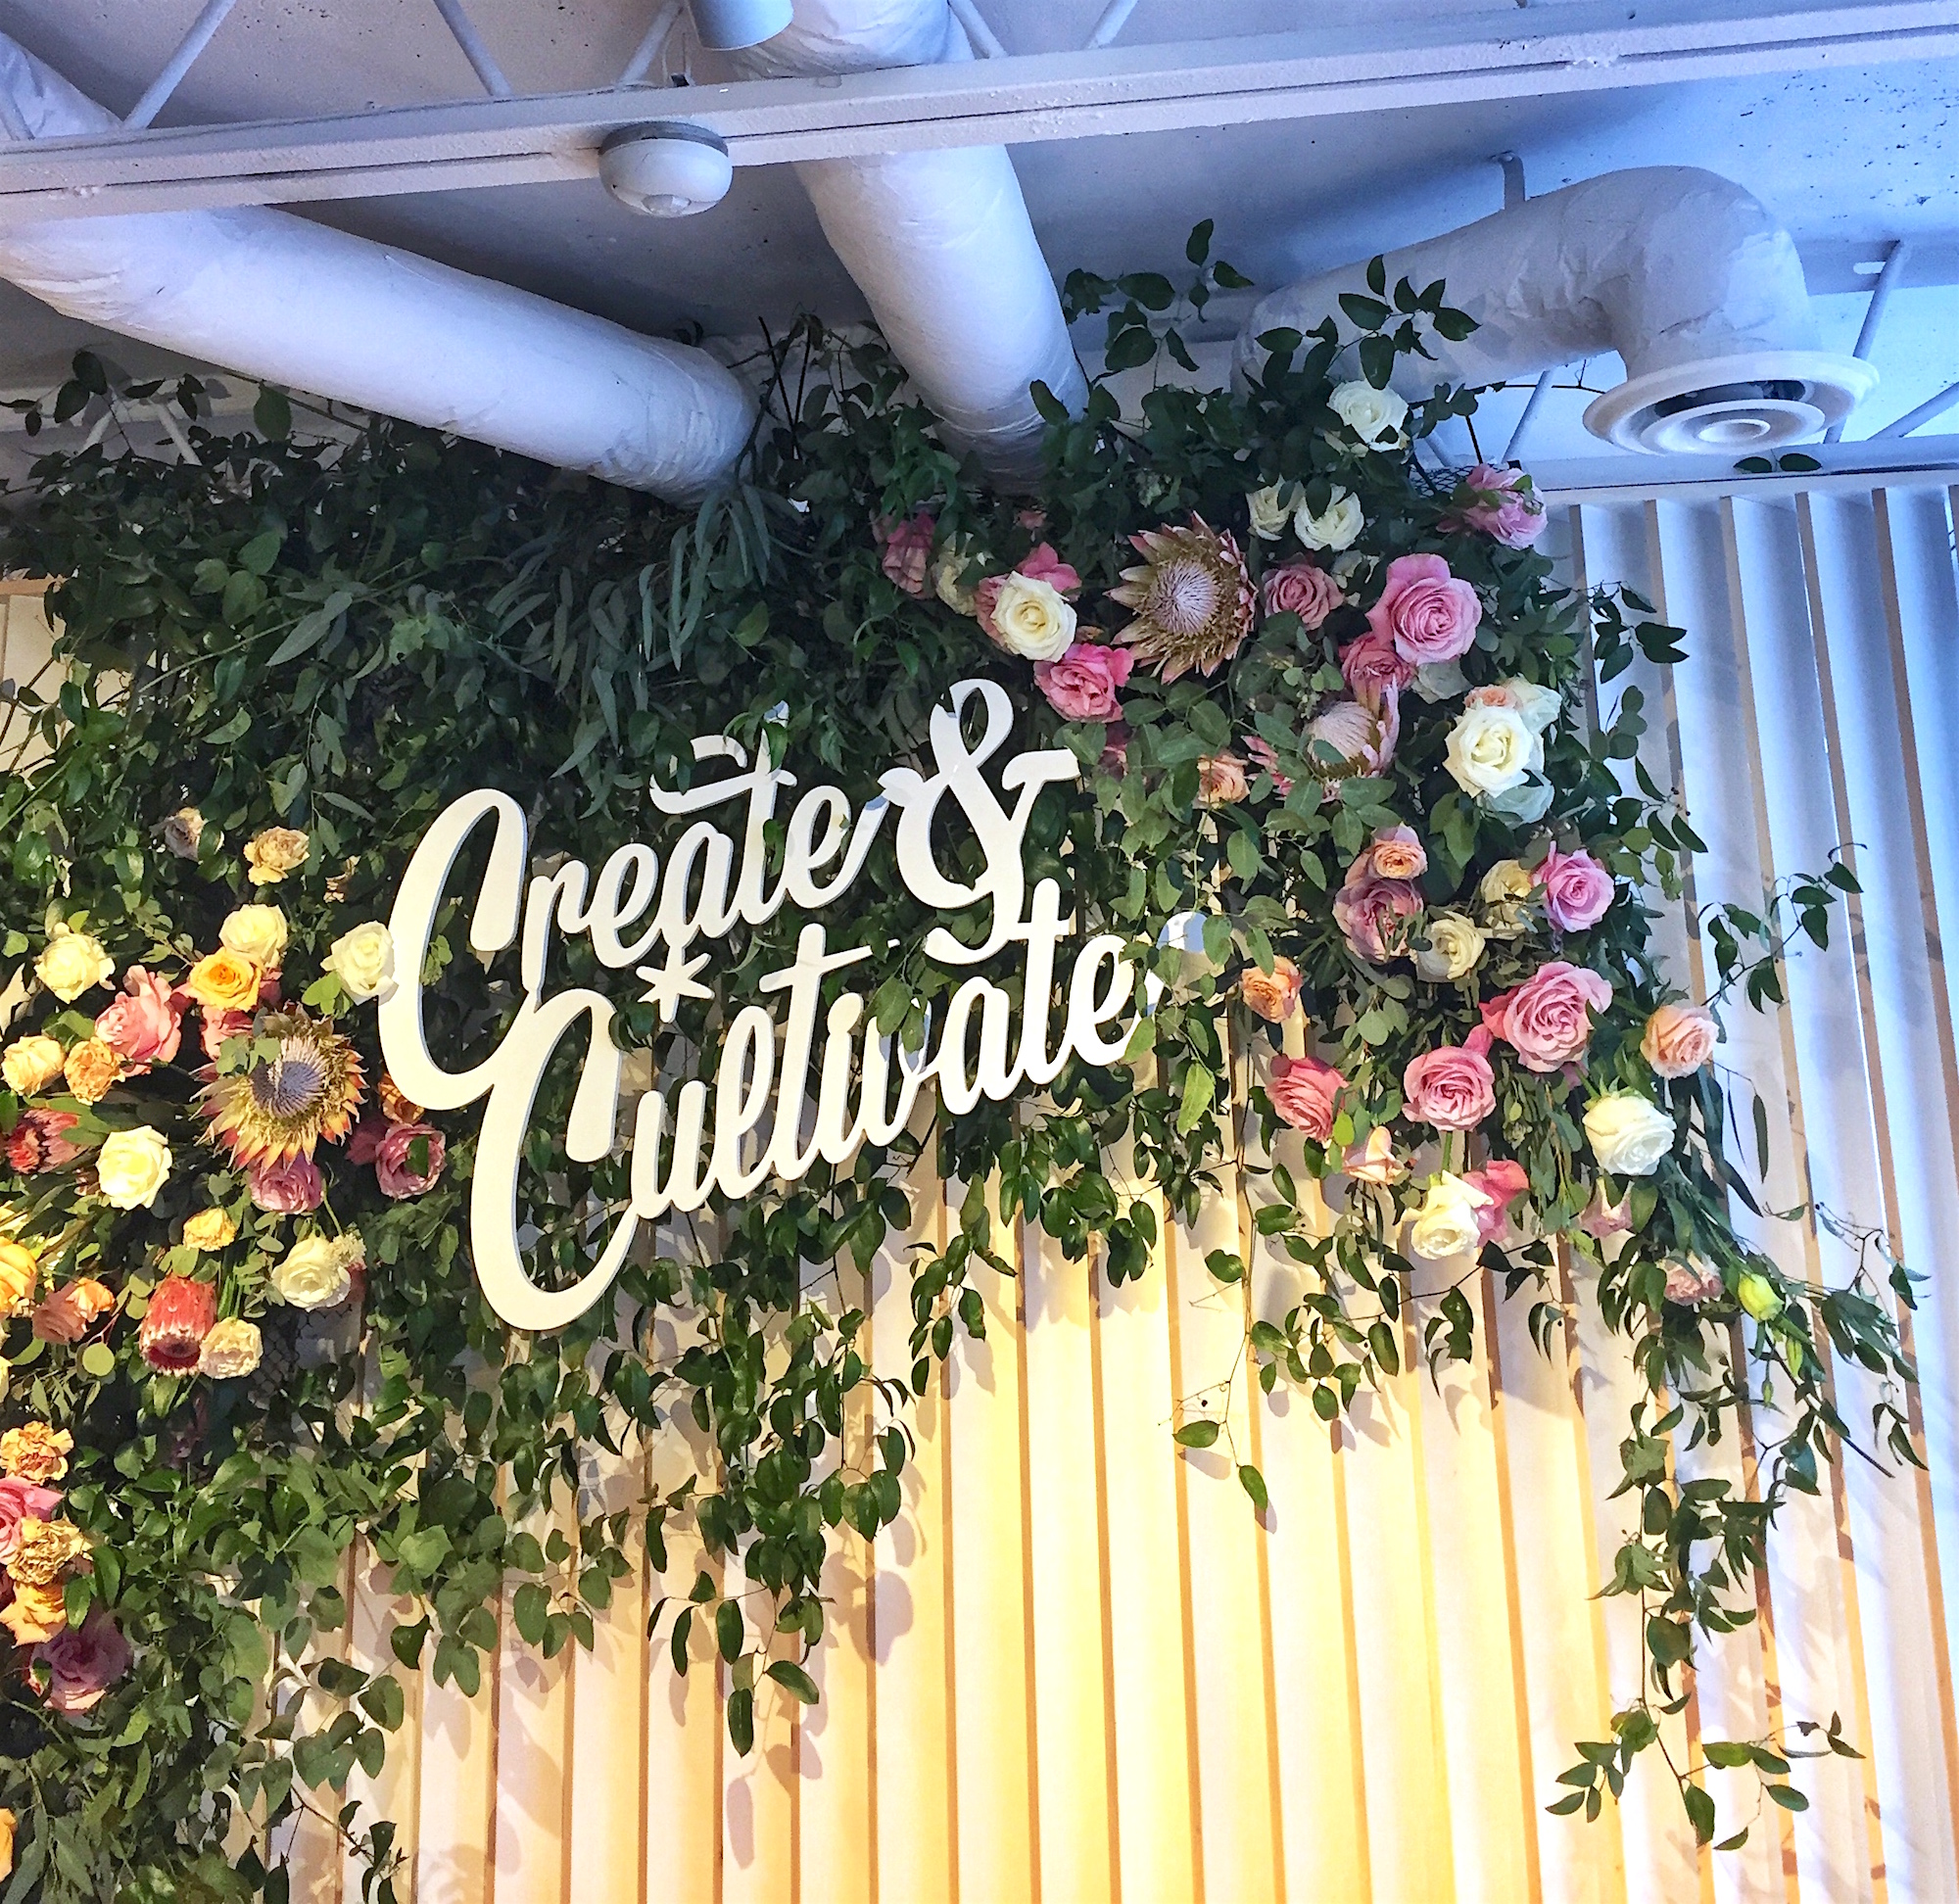 Four takeaways from the Create & Cultivate Austin Pop-up